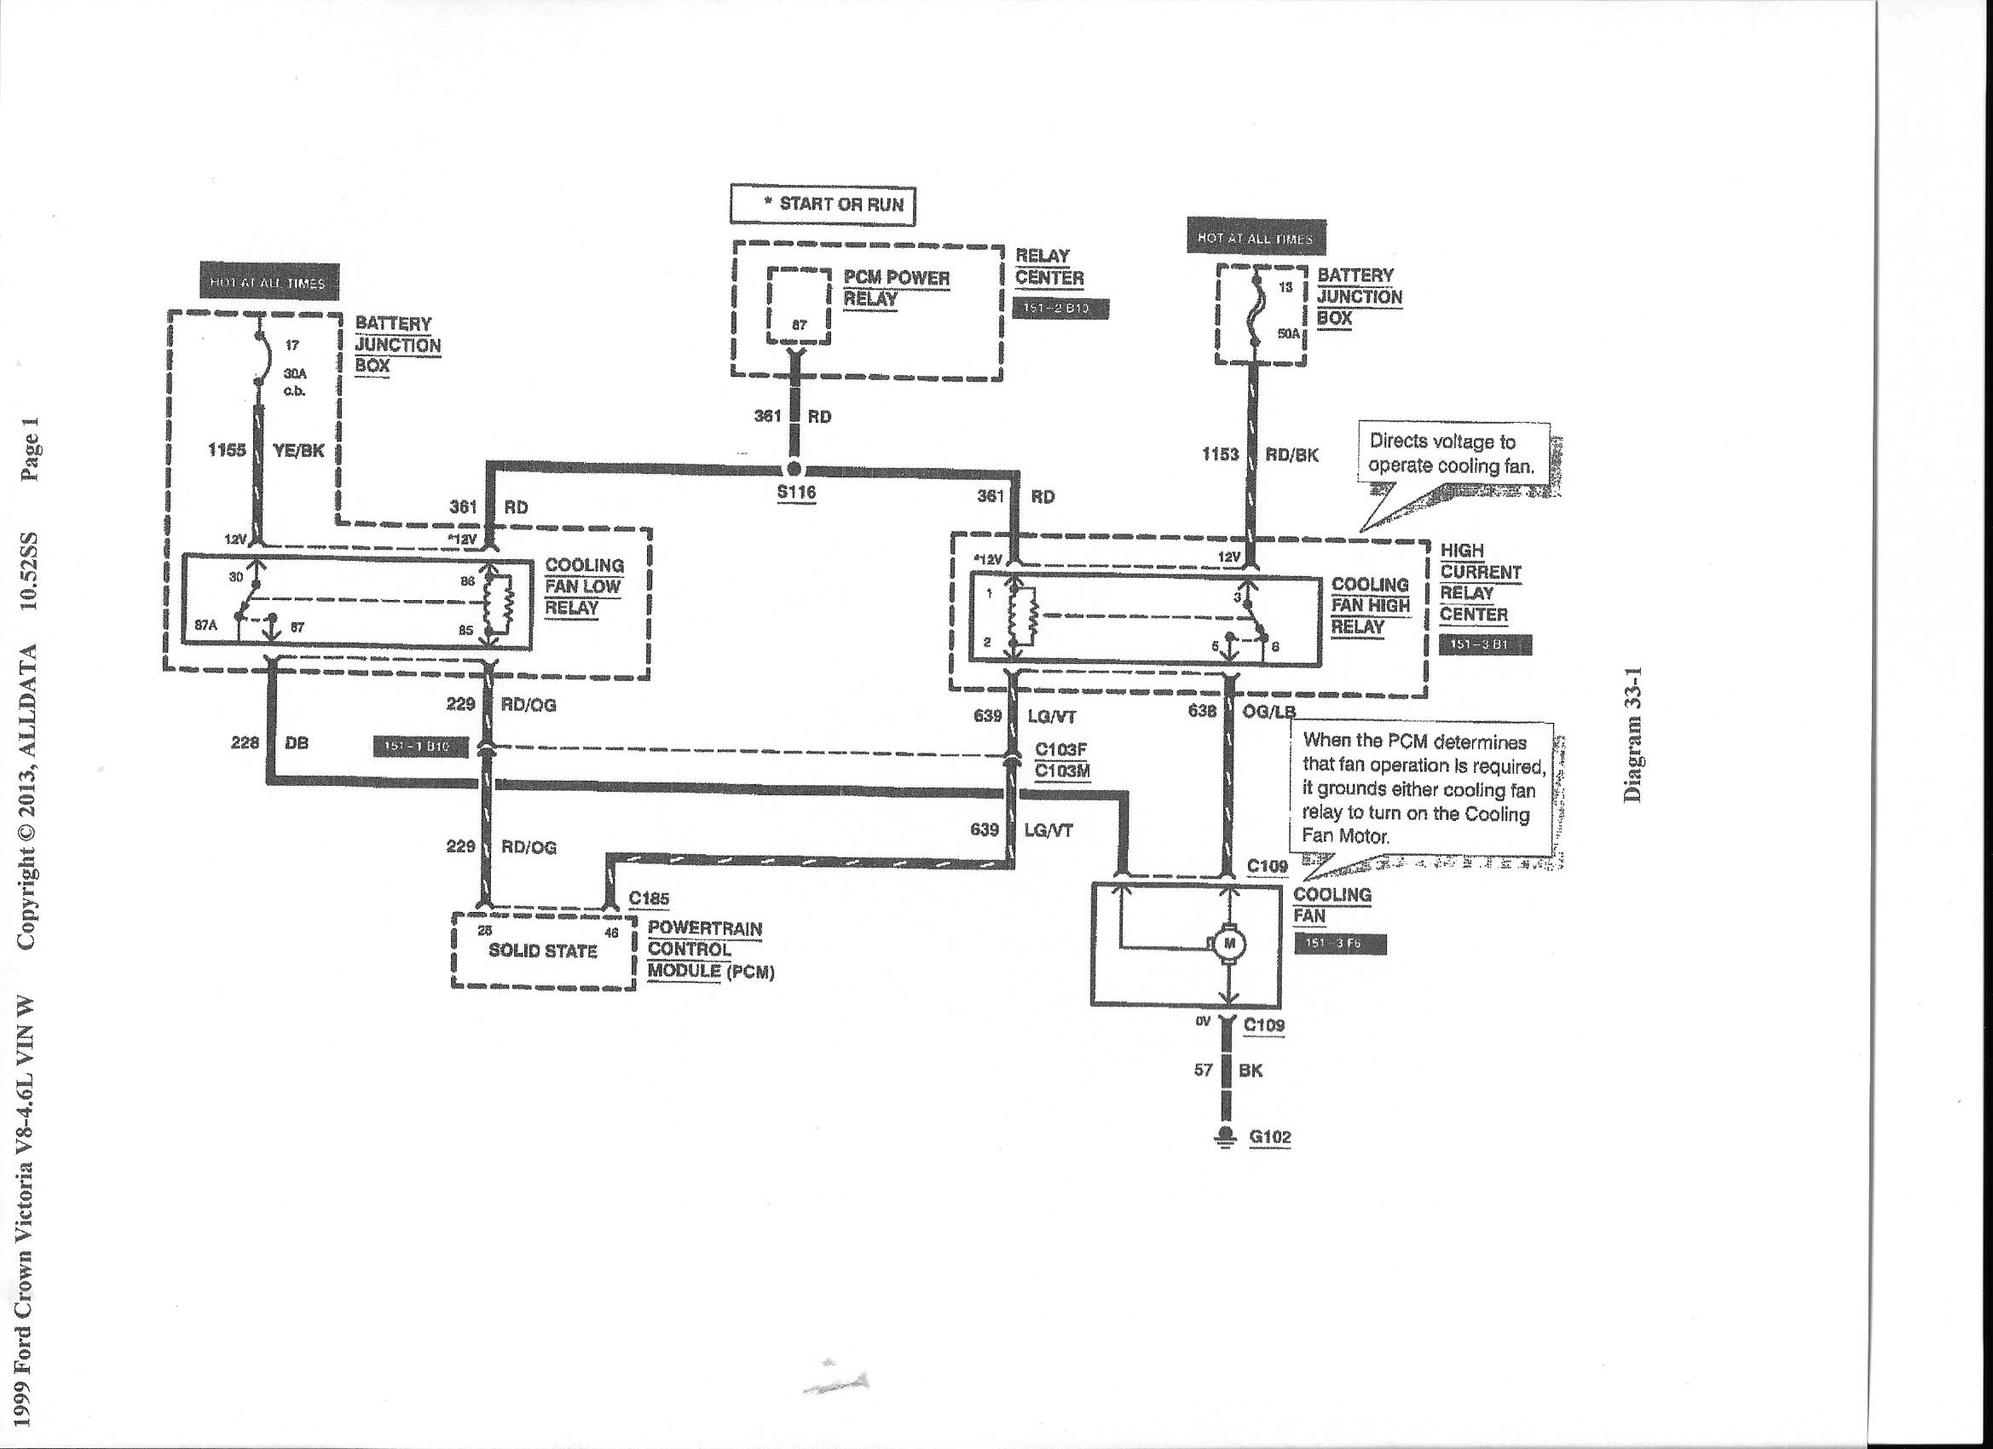 Wiring Diagram For Peterbilt 379